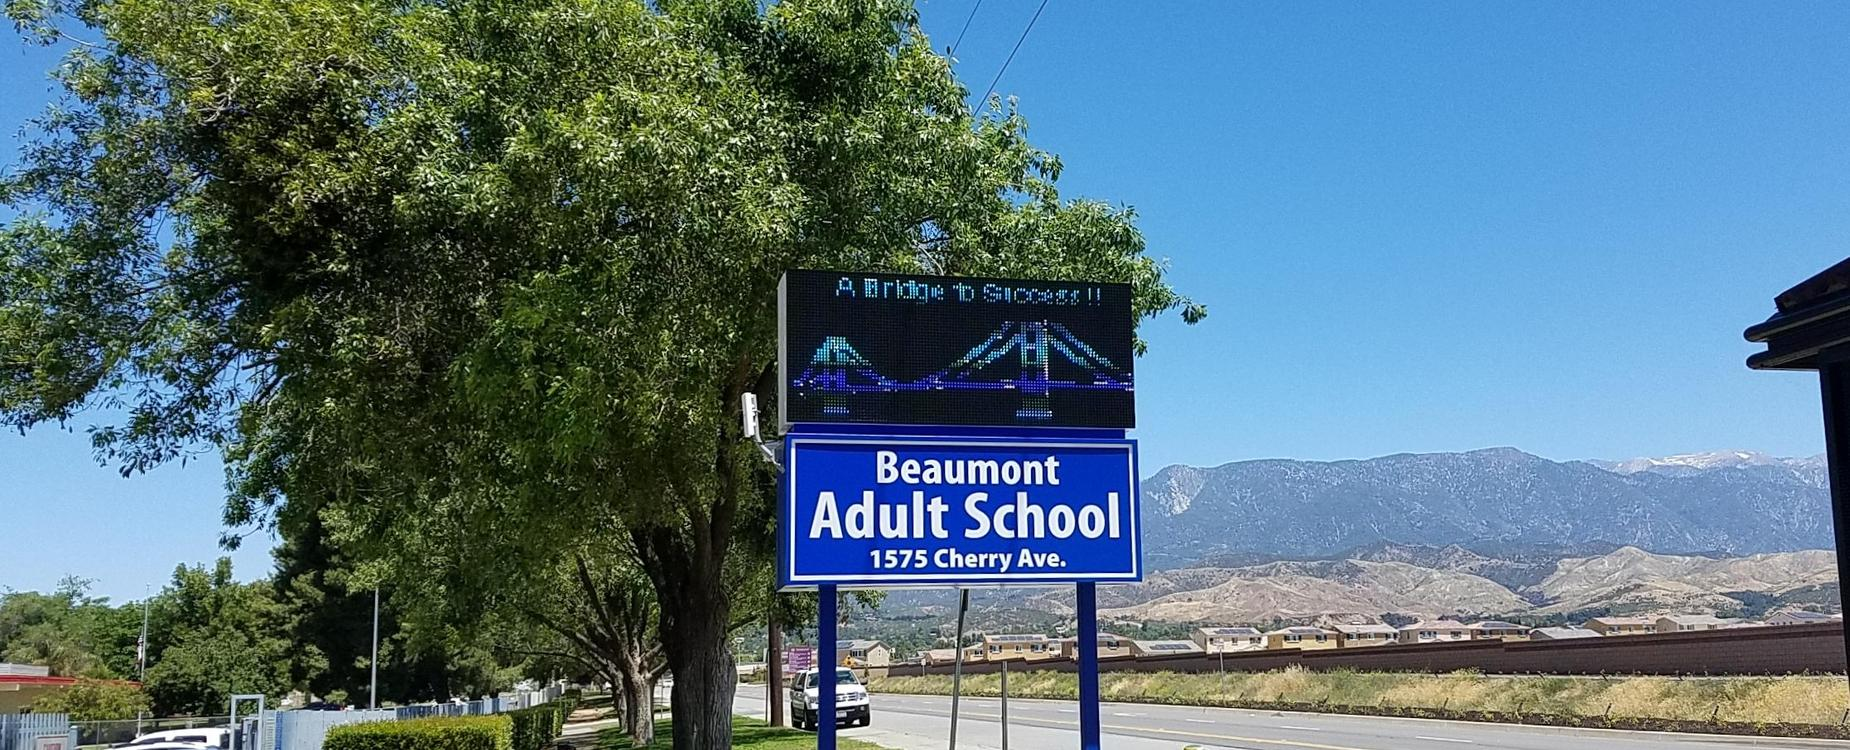 Photo of Beaumont Adult School marquee sign with mountains in background